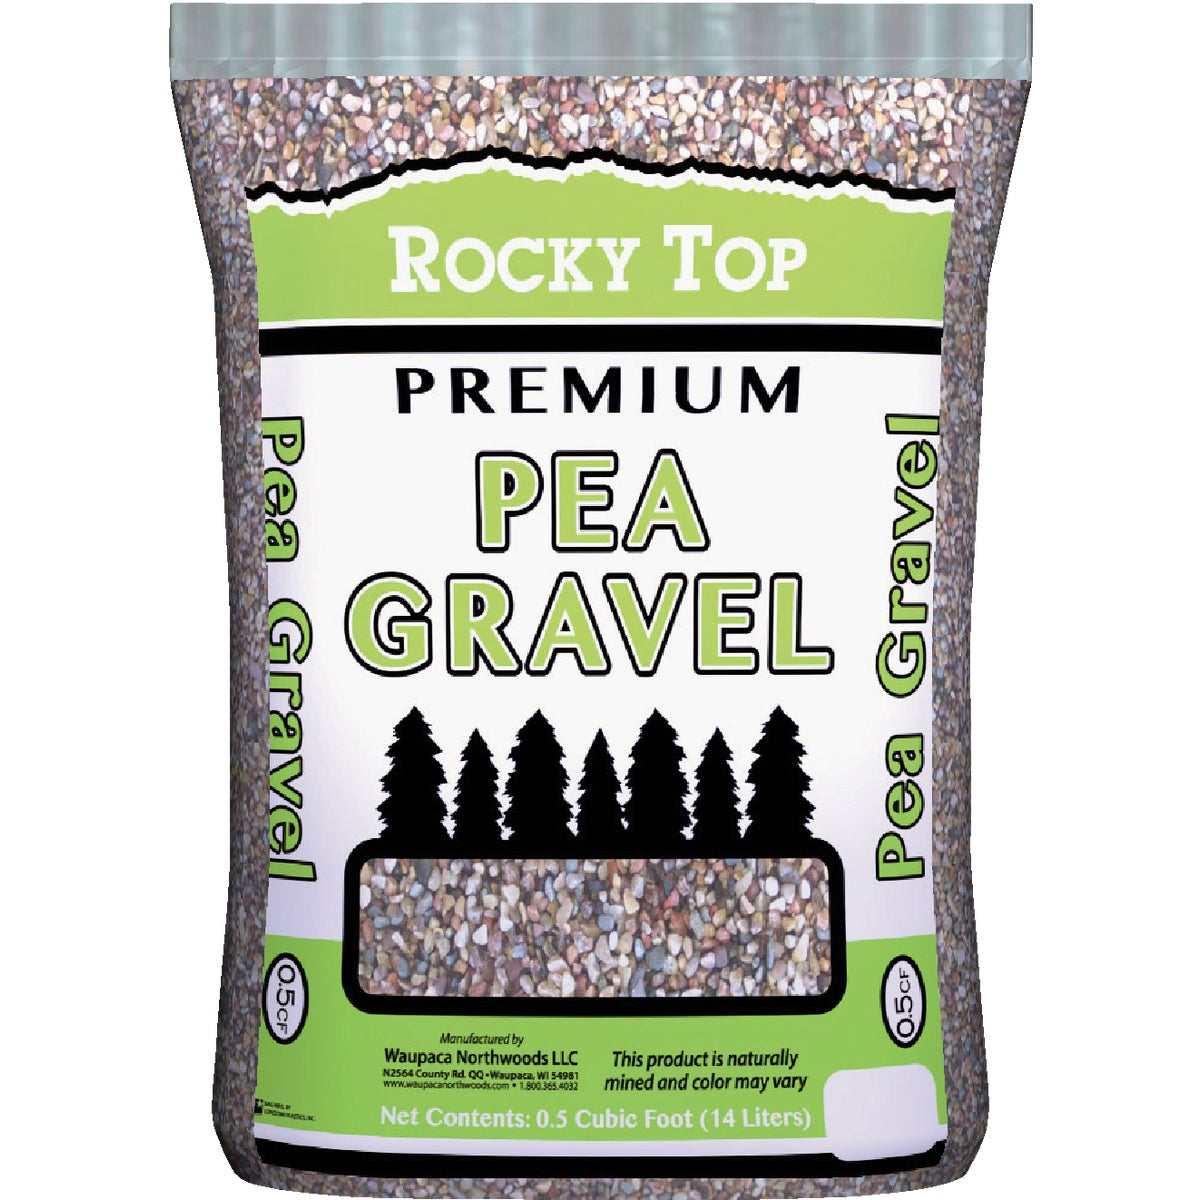 .5 CU FT PEA GRAVEL - WRT00023 by Waupaca Northwoods